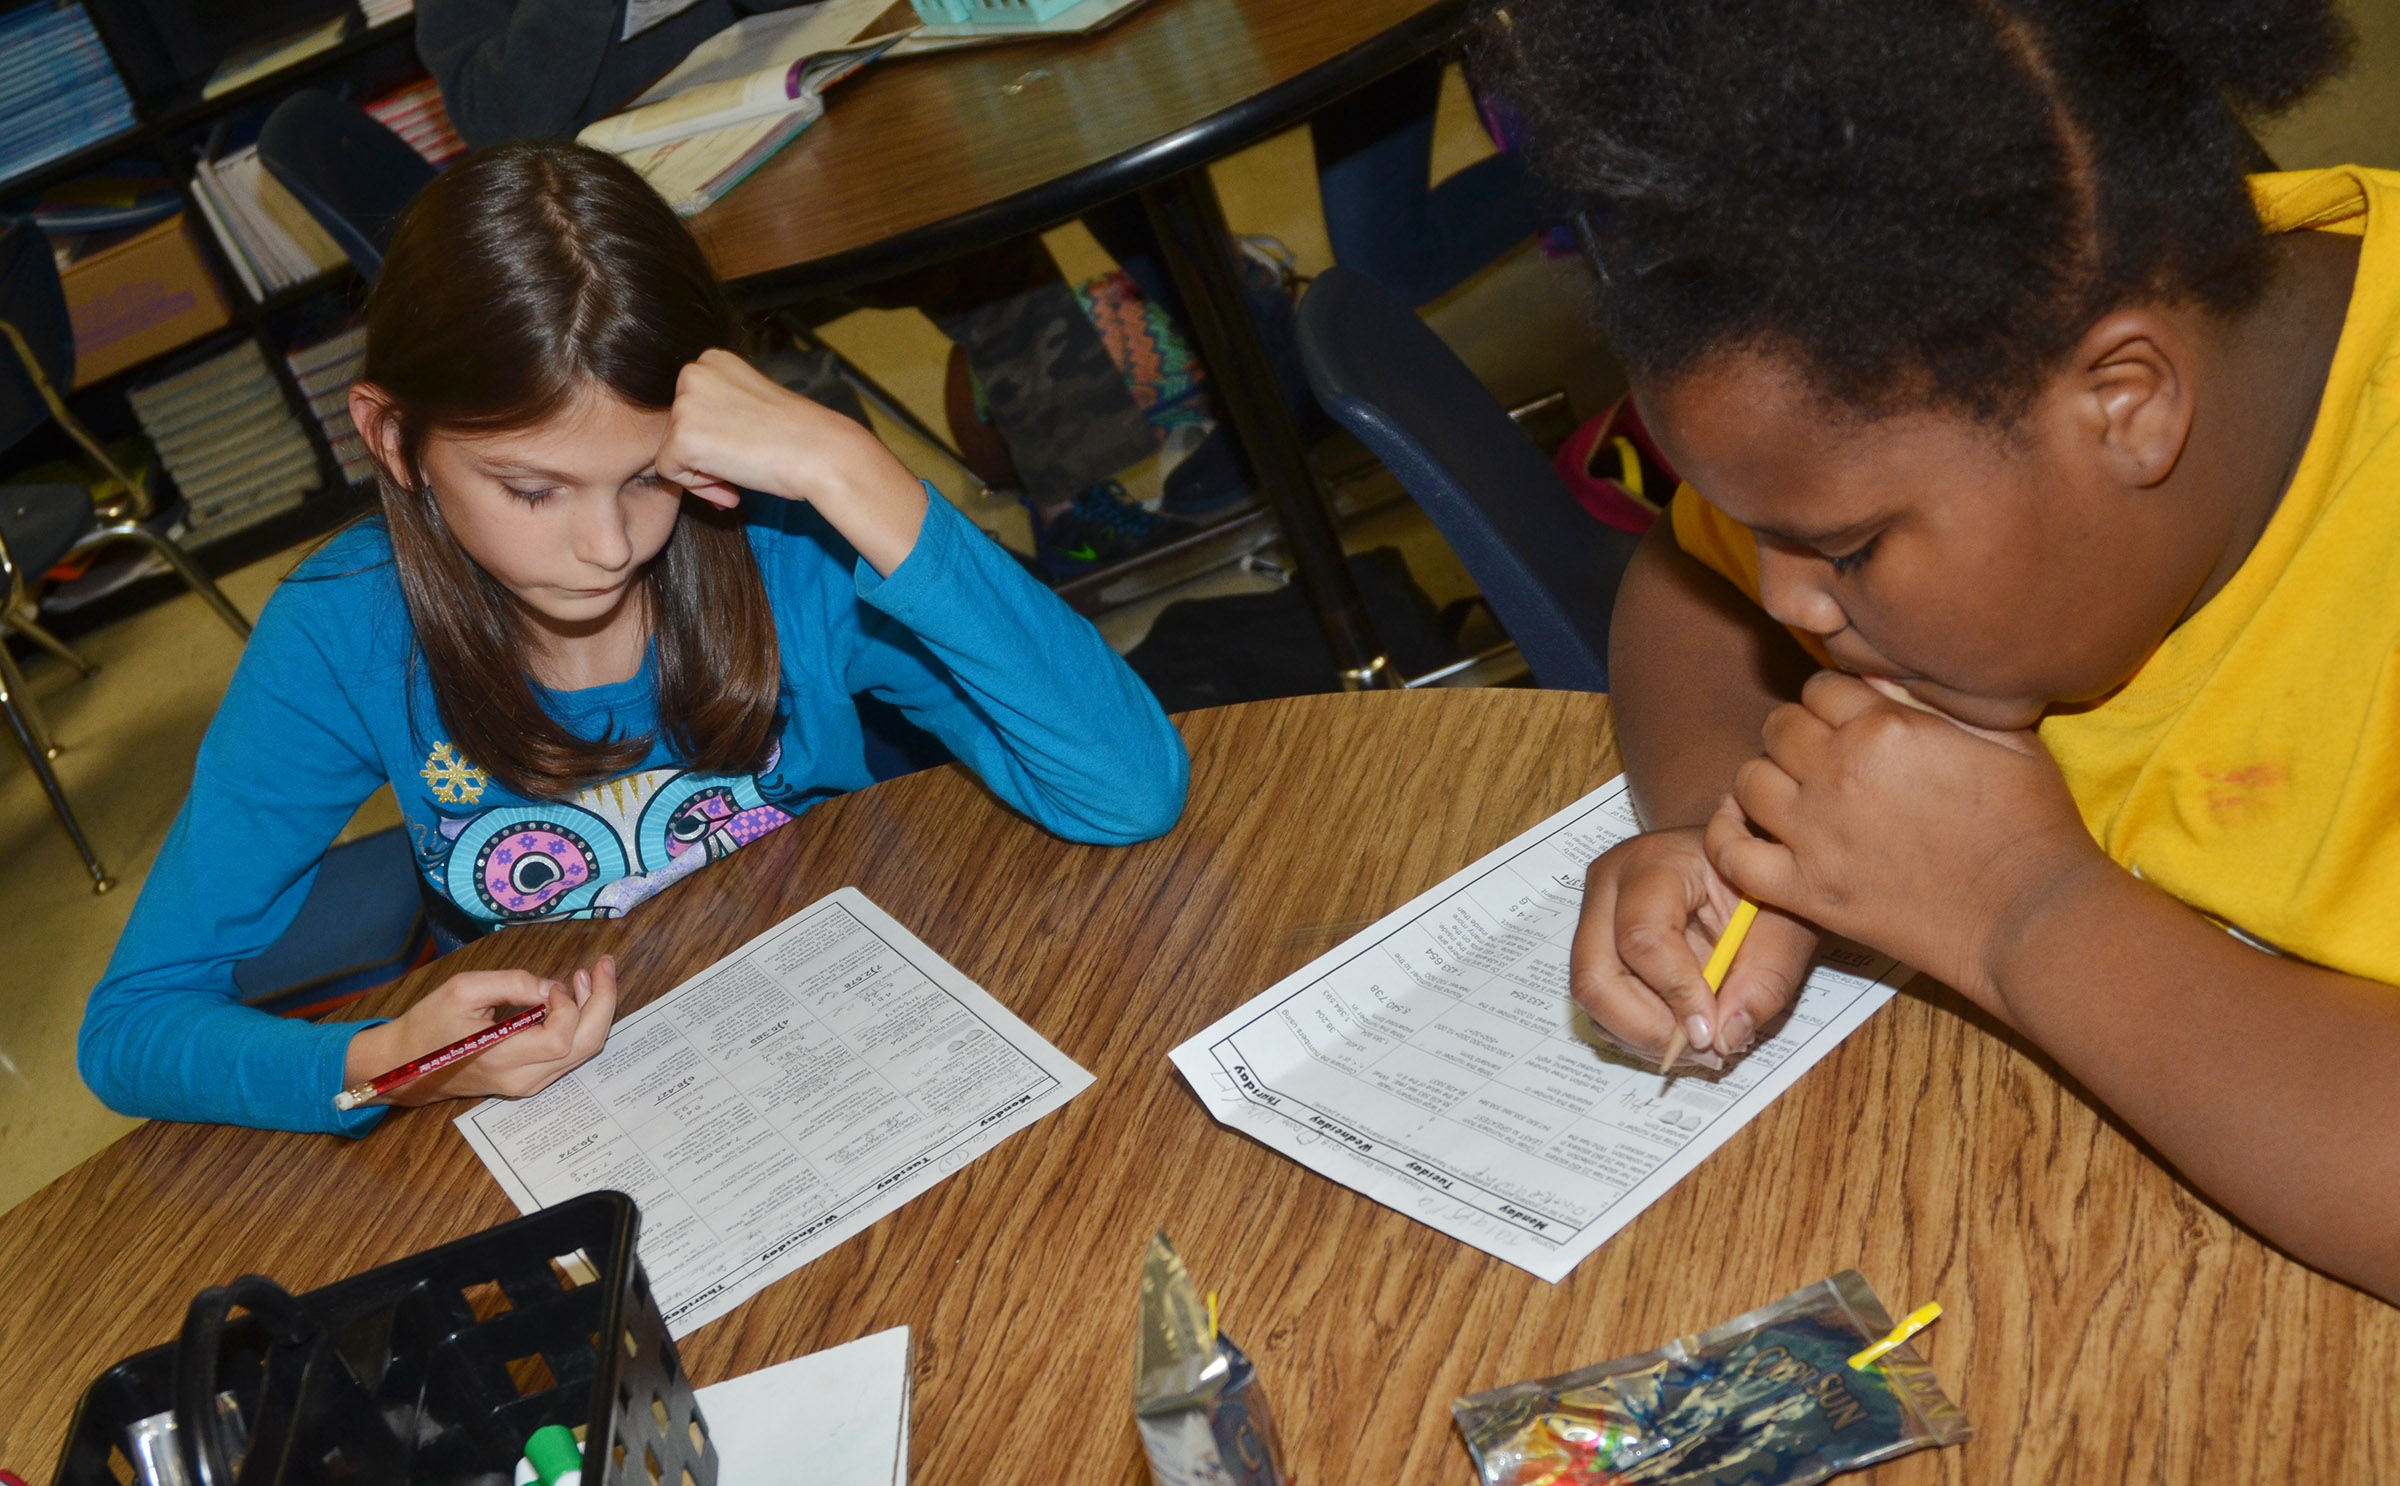 CES fourth-graders Madie Gebler, at left, and Talaysia Daniels work on their homework.